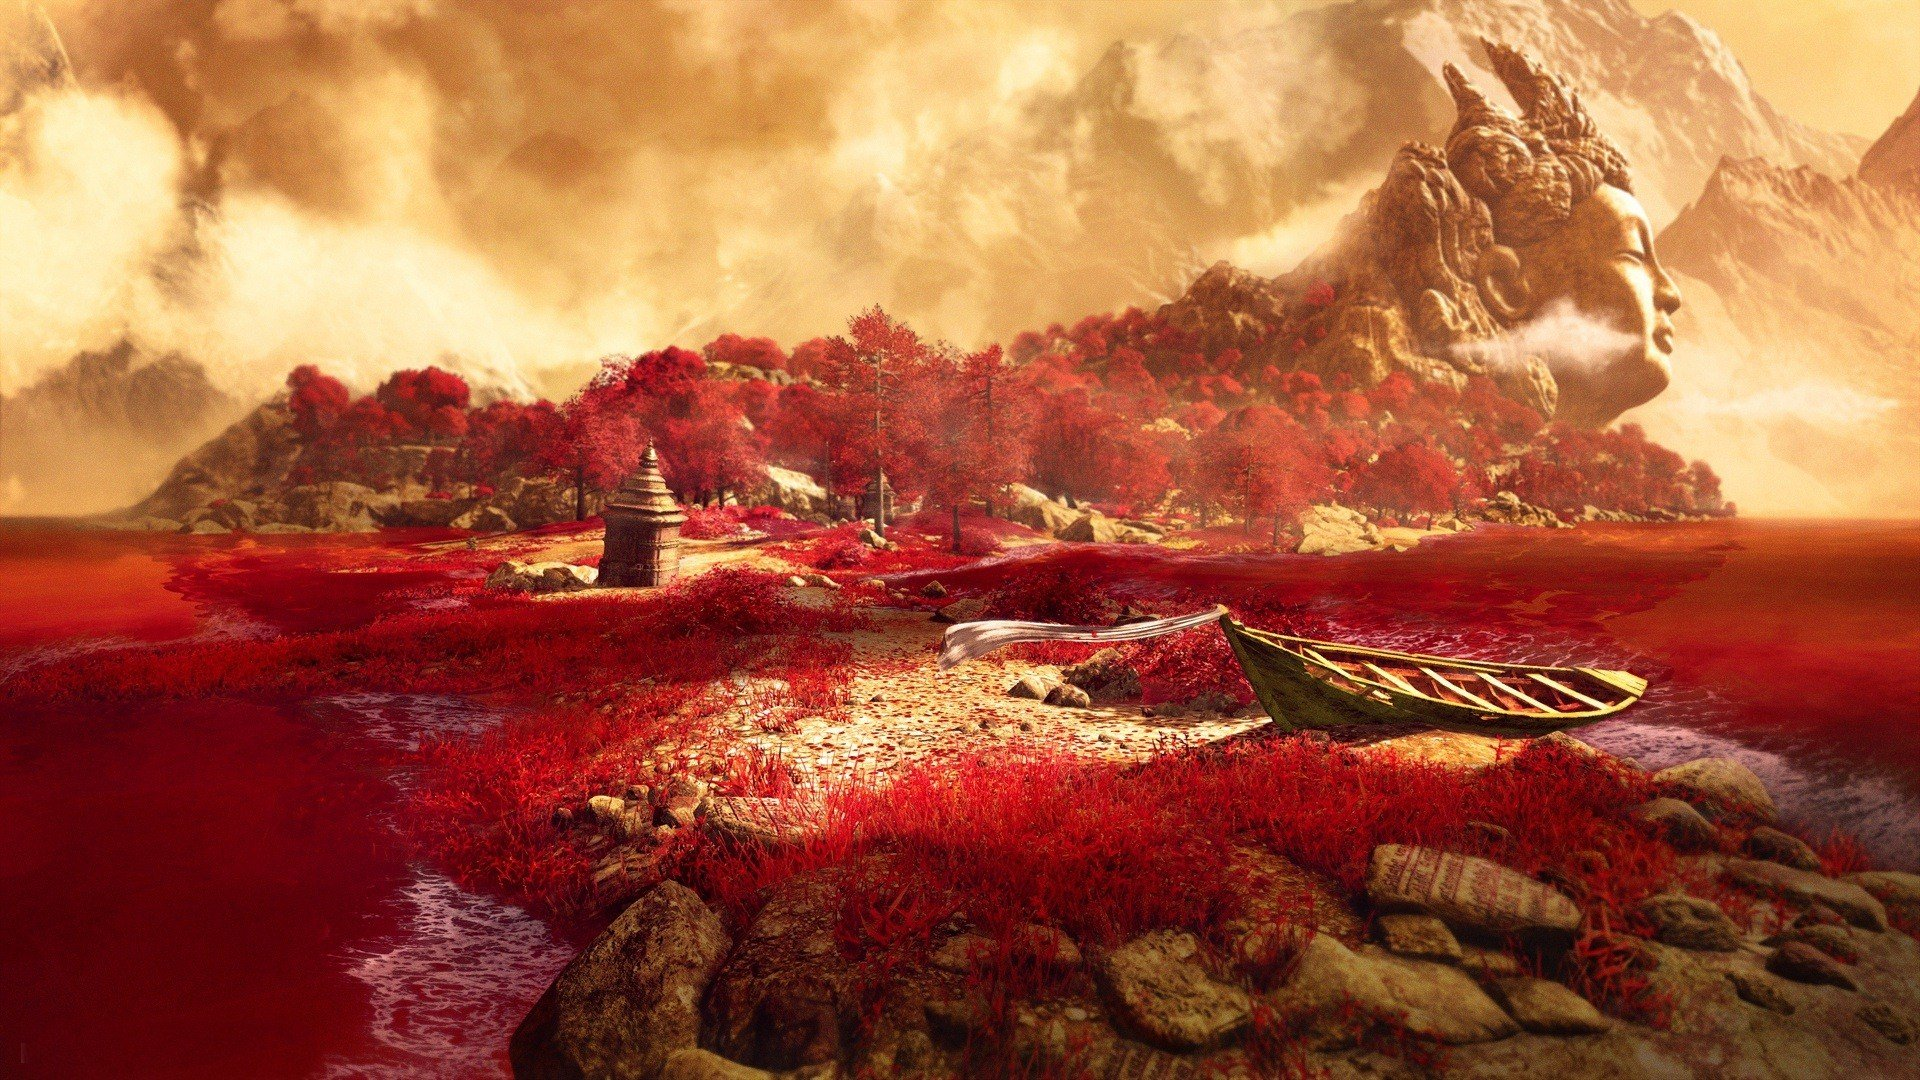 Far Cry 4 Wallpapers Hd Desktop And Mobile Backgrounds: Farcry 4, Shangri La HD Wallpapers / Desktop And Mobile